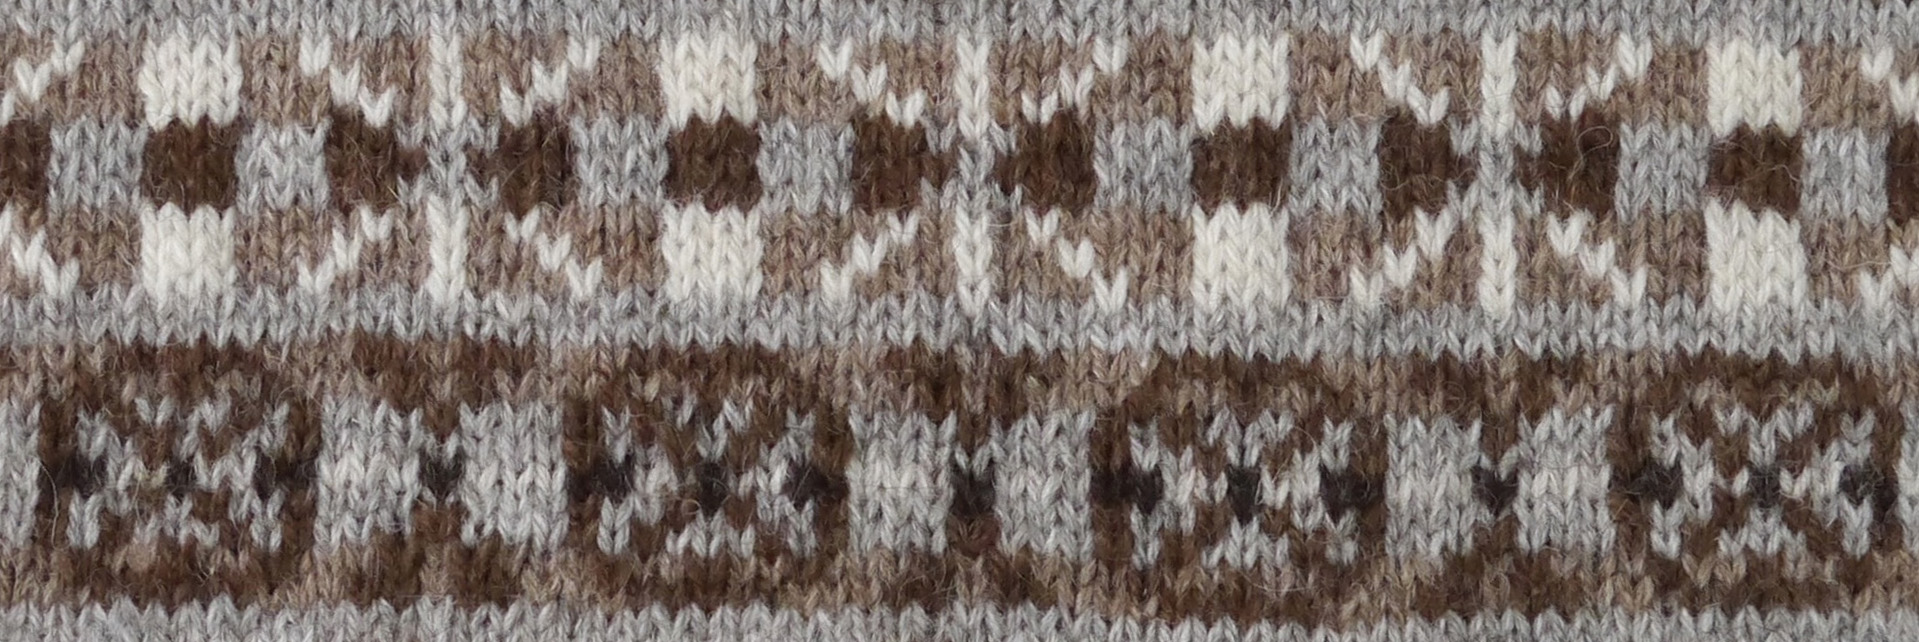 Foula Wool Knitting Pattern1